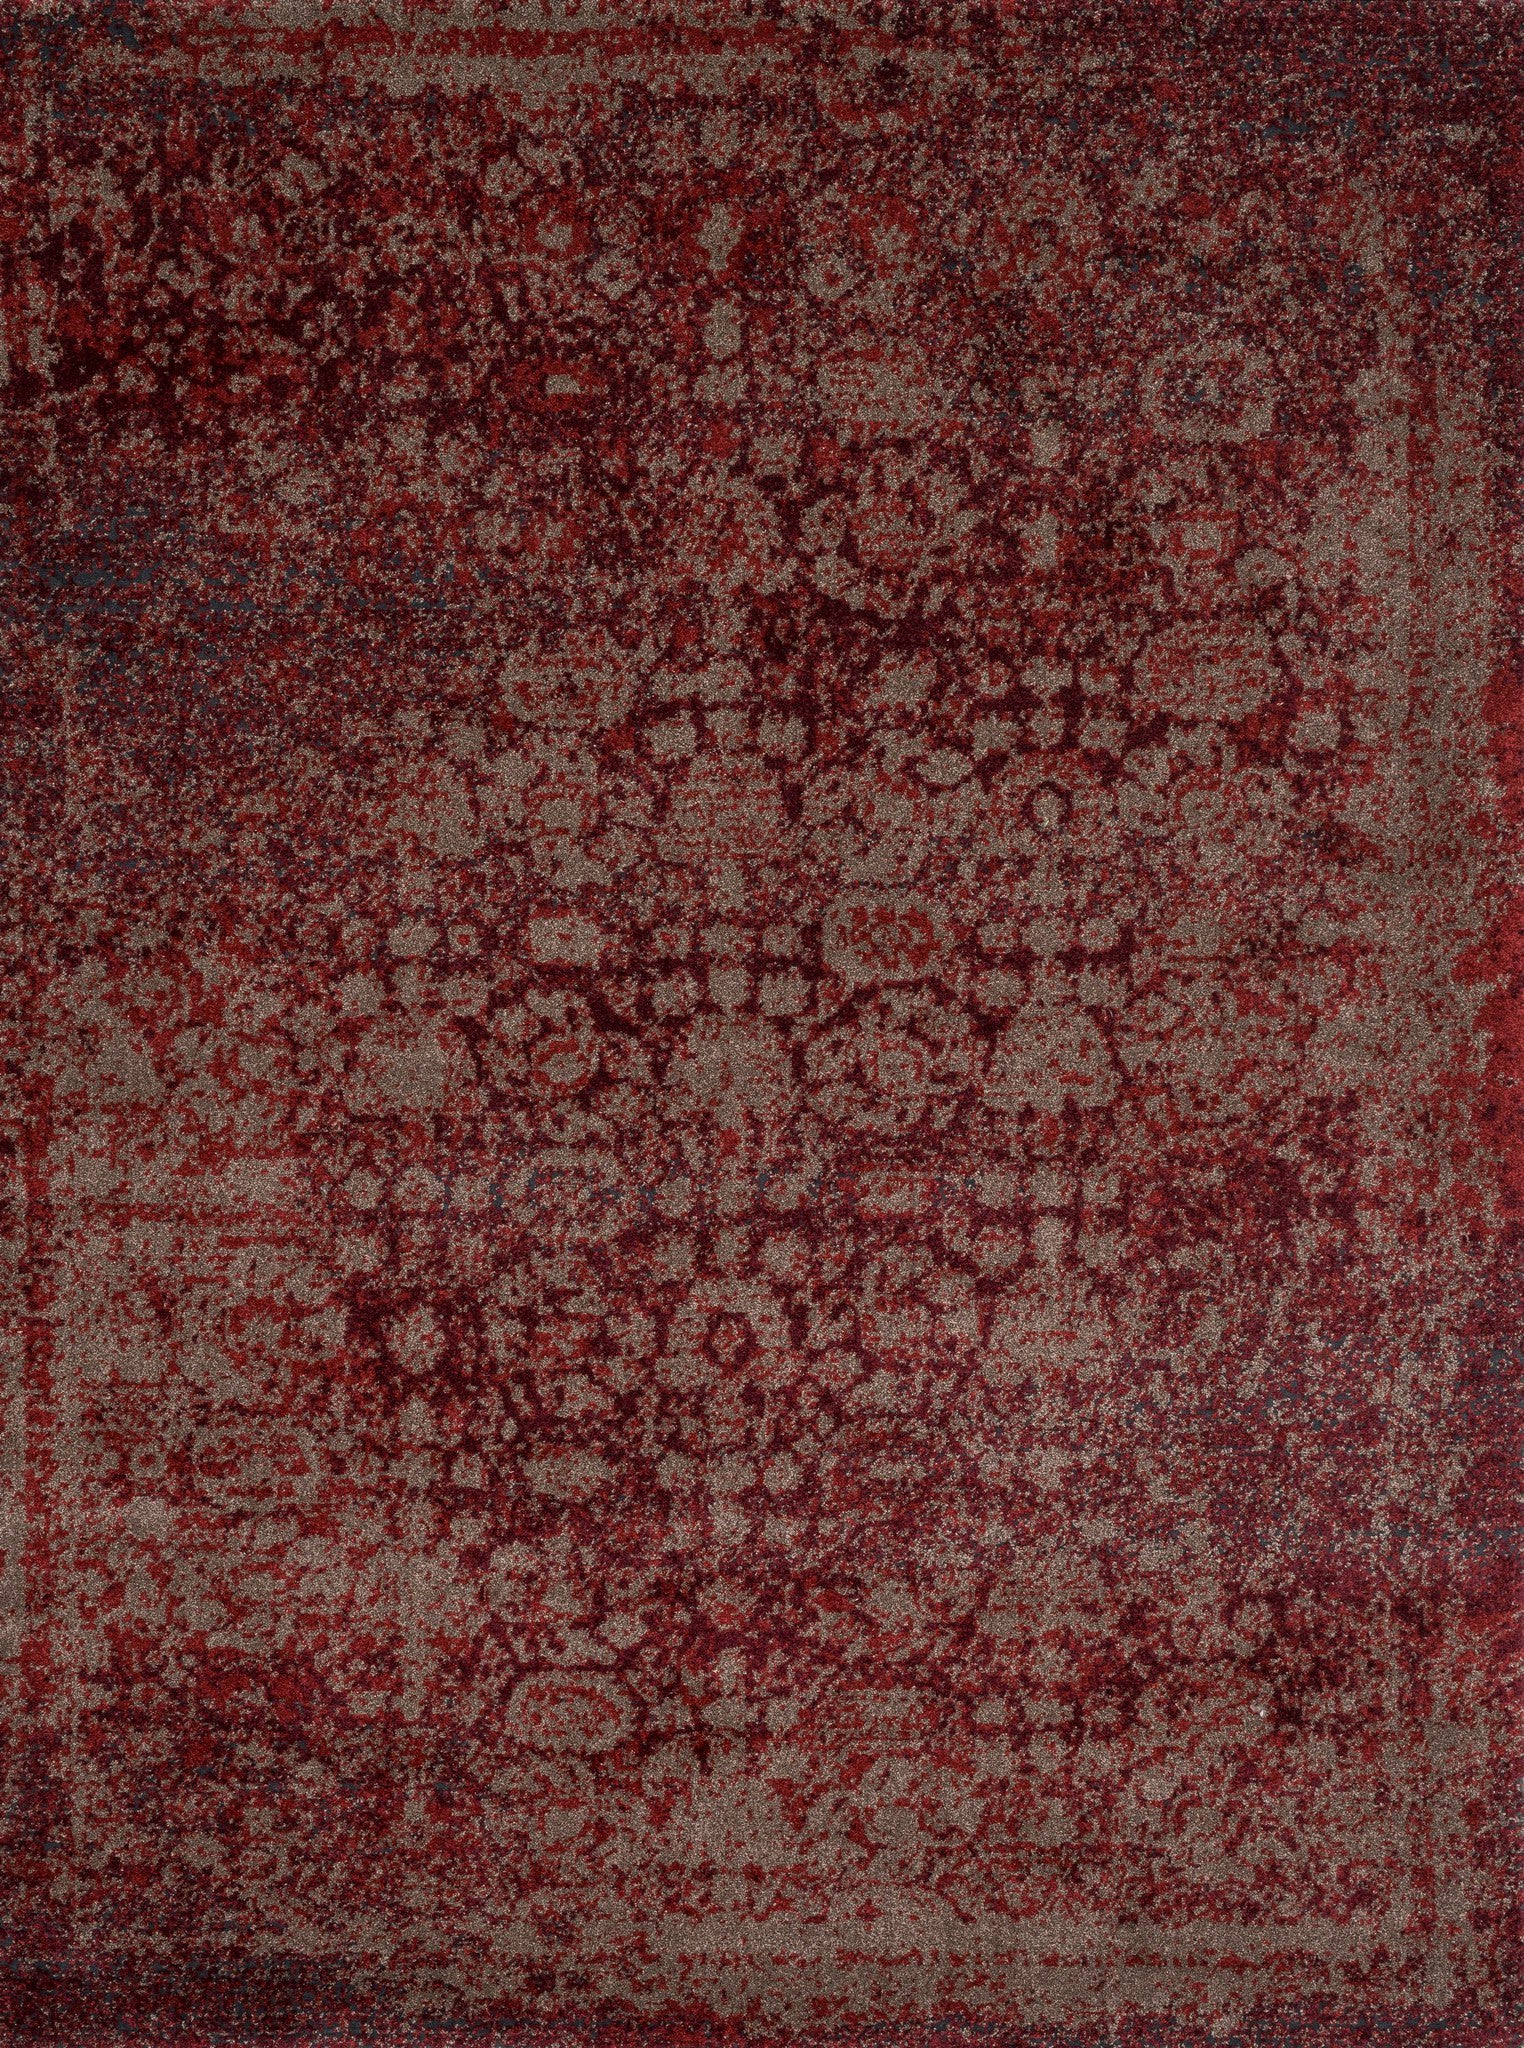 Loloi Viera VR-05 Red / Taupe Area Rug main image